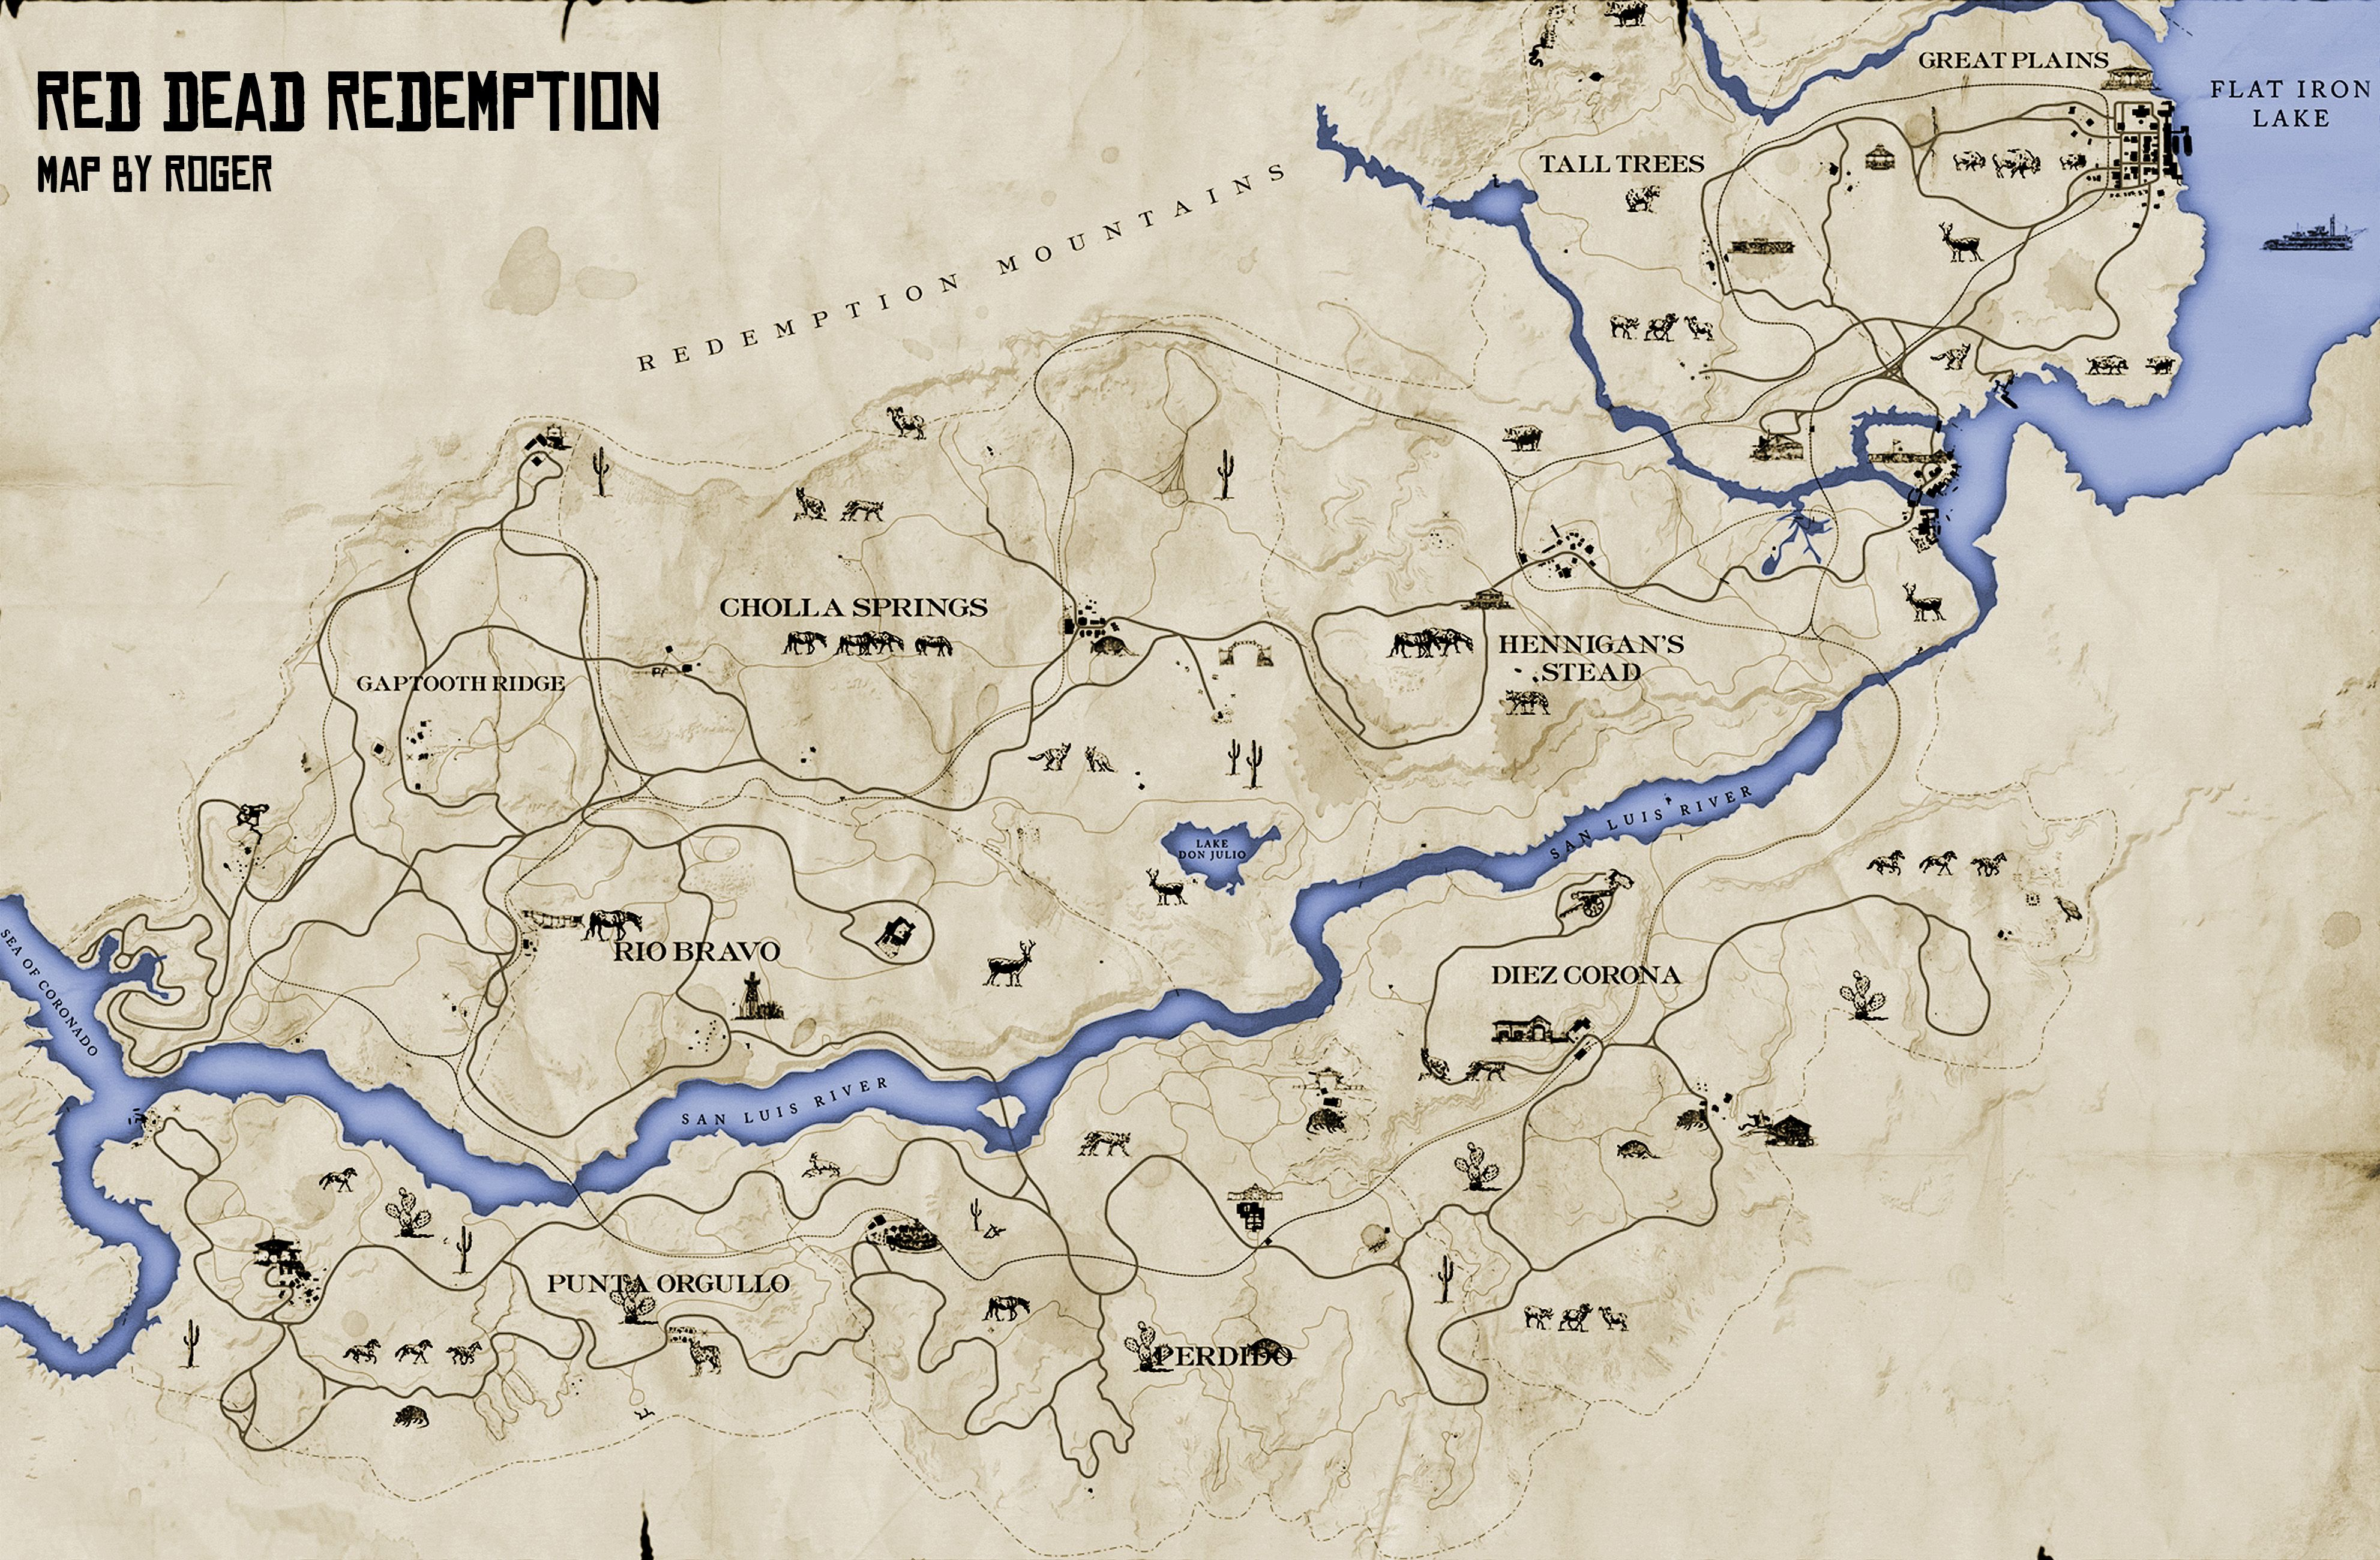 Mapa Red Dead Redemption.Map From Video Game Red Dead Redemption Game Is Set In The